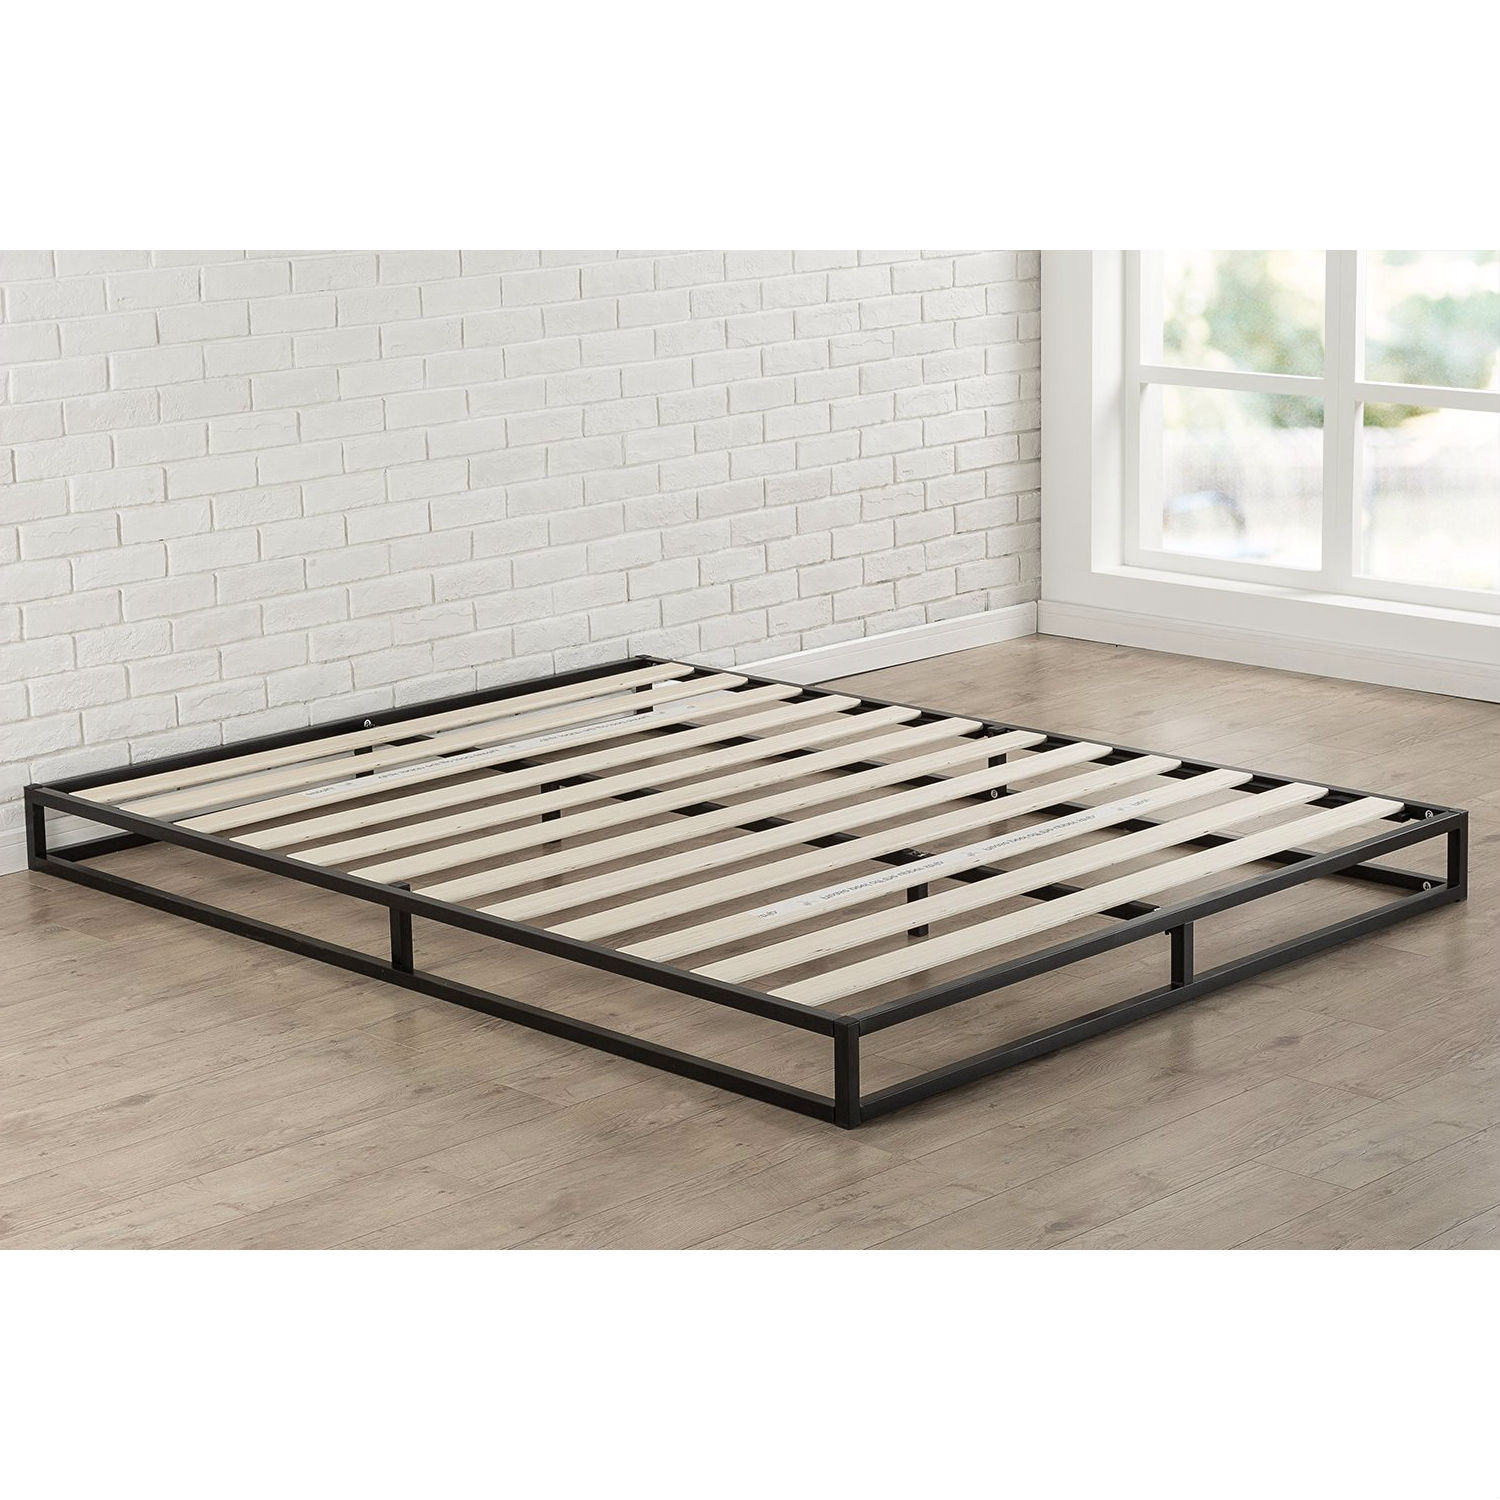 Twin 6 Inch Low Profile Platform Bed Frame With Modern Wood Slats Mattress Support System Fastfurnishings Com